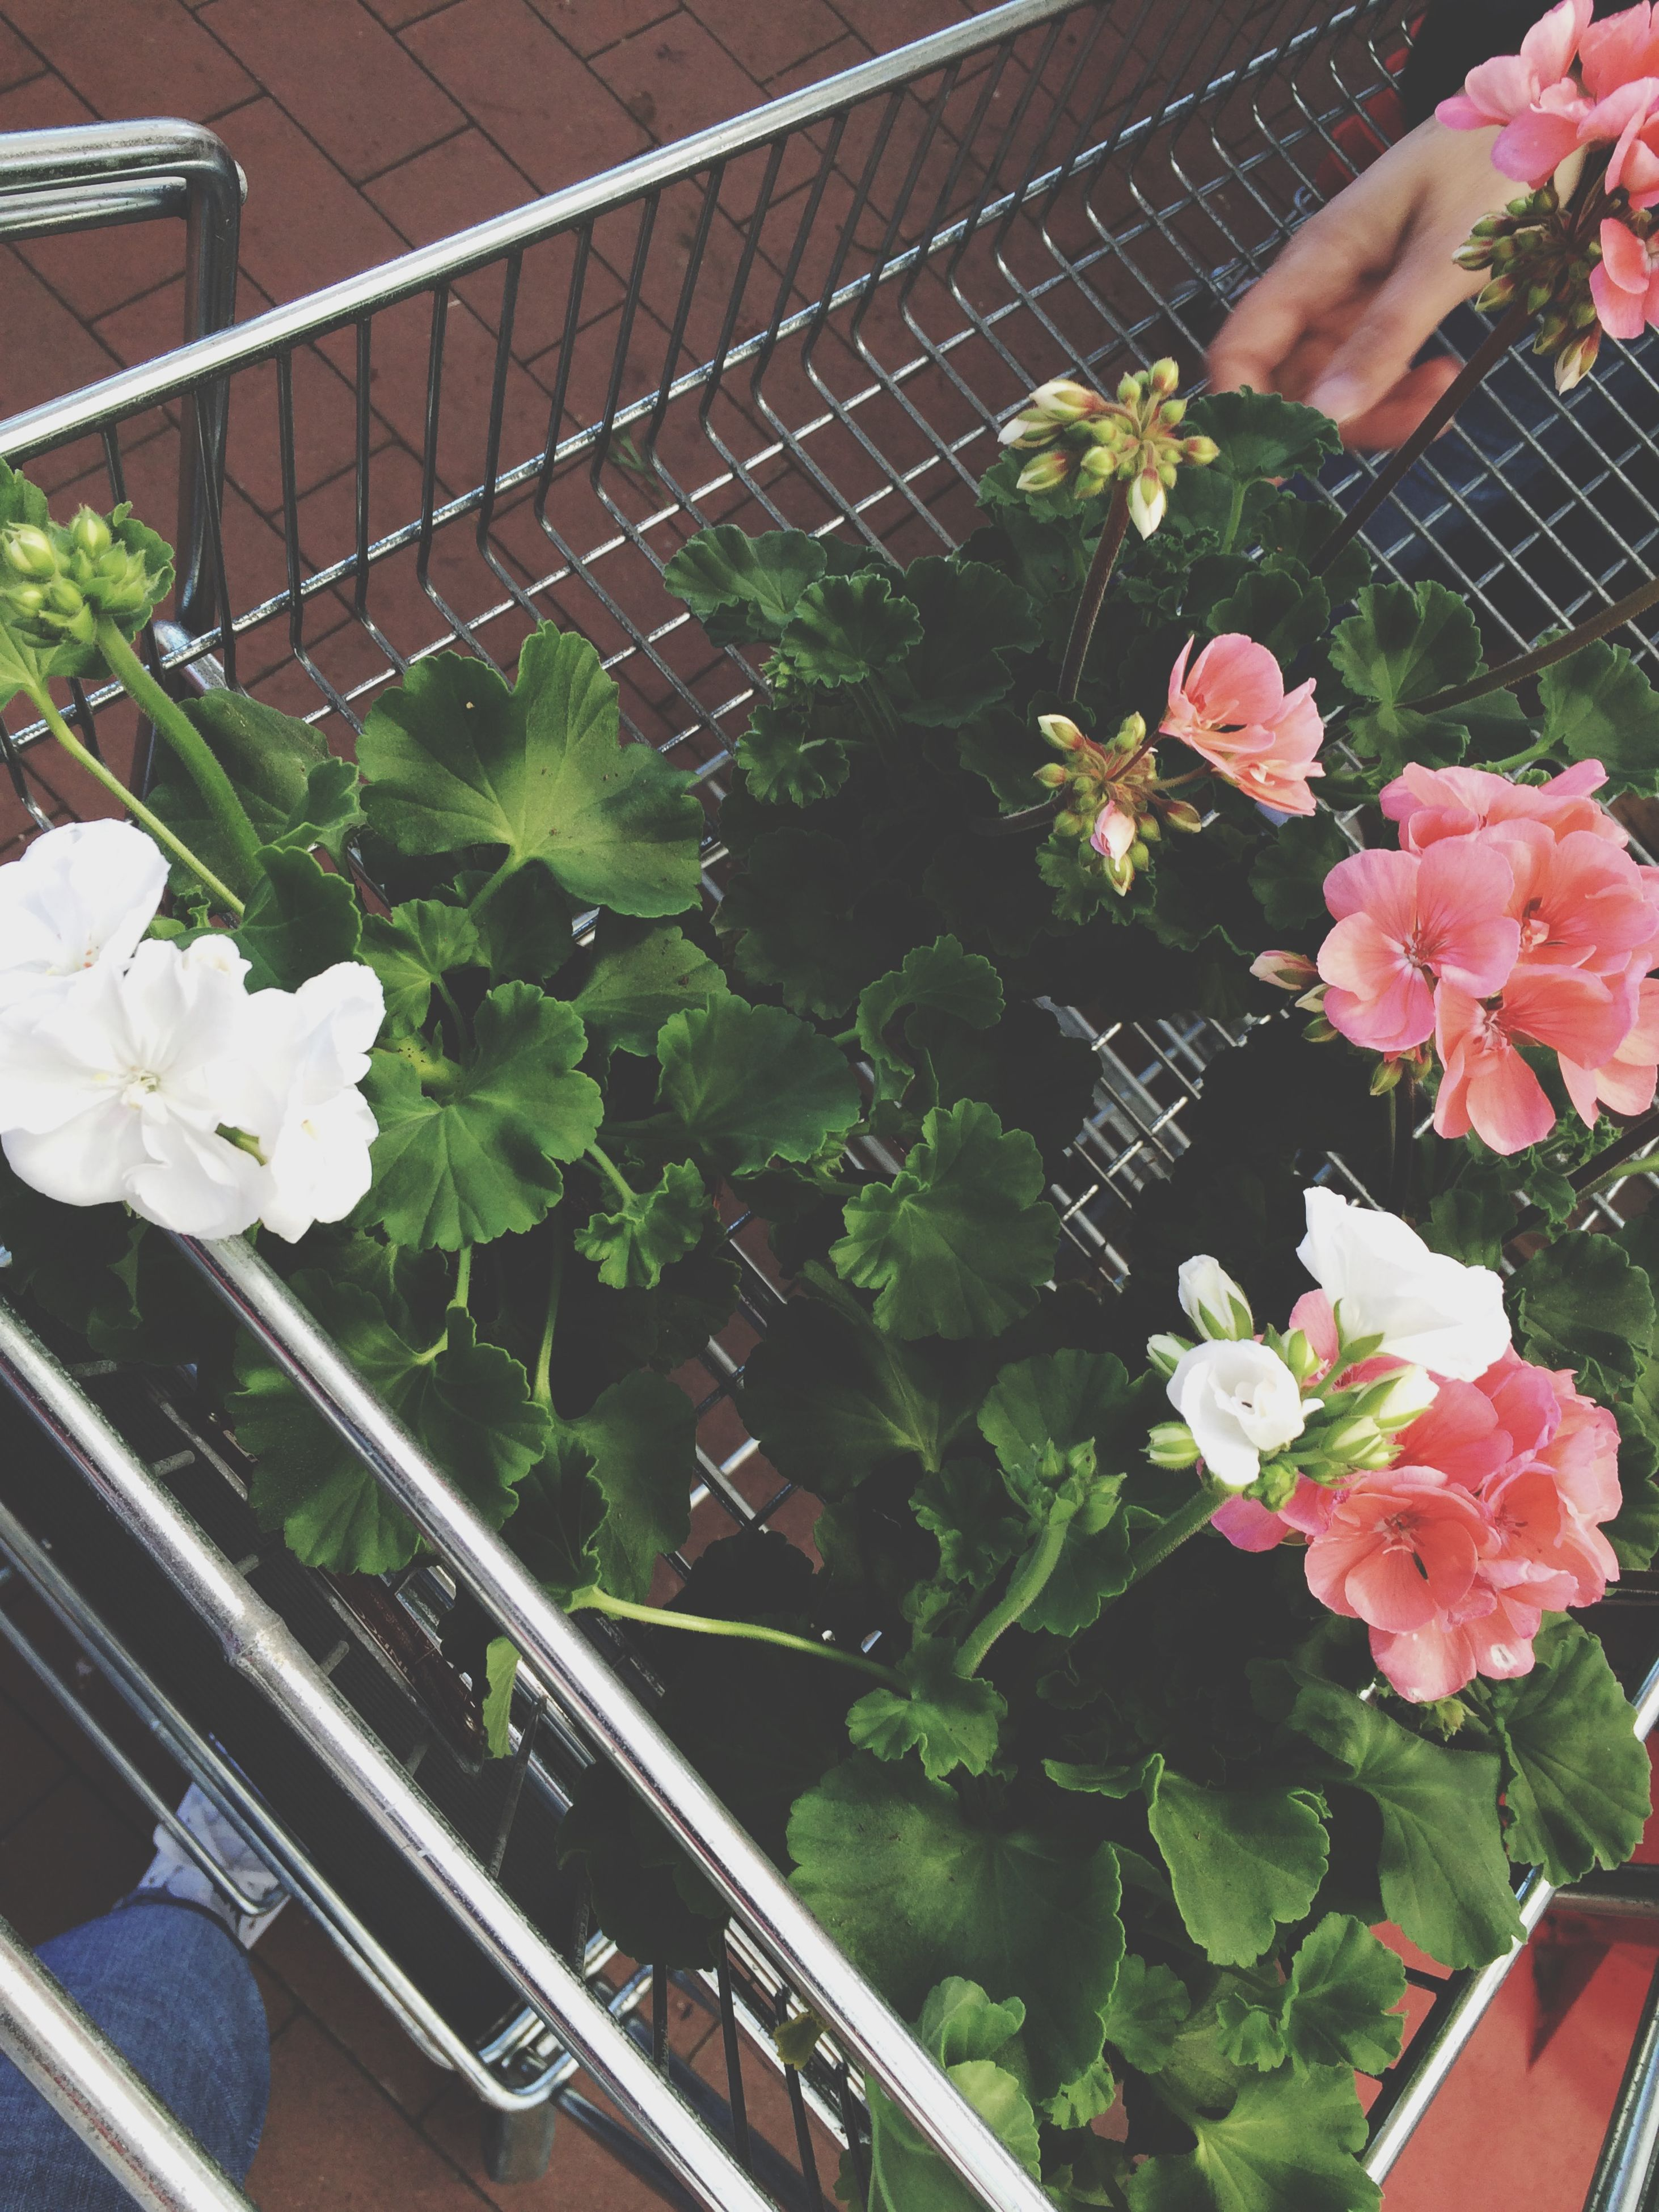 flower, freshness, fragility, petal, growth, plant, high angle view, beauty in nature, flower head, blooming, nature, pink color, in bloom, leaf, blossom, potted plant, railing, outdoors, front or back yard, day